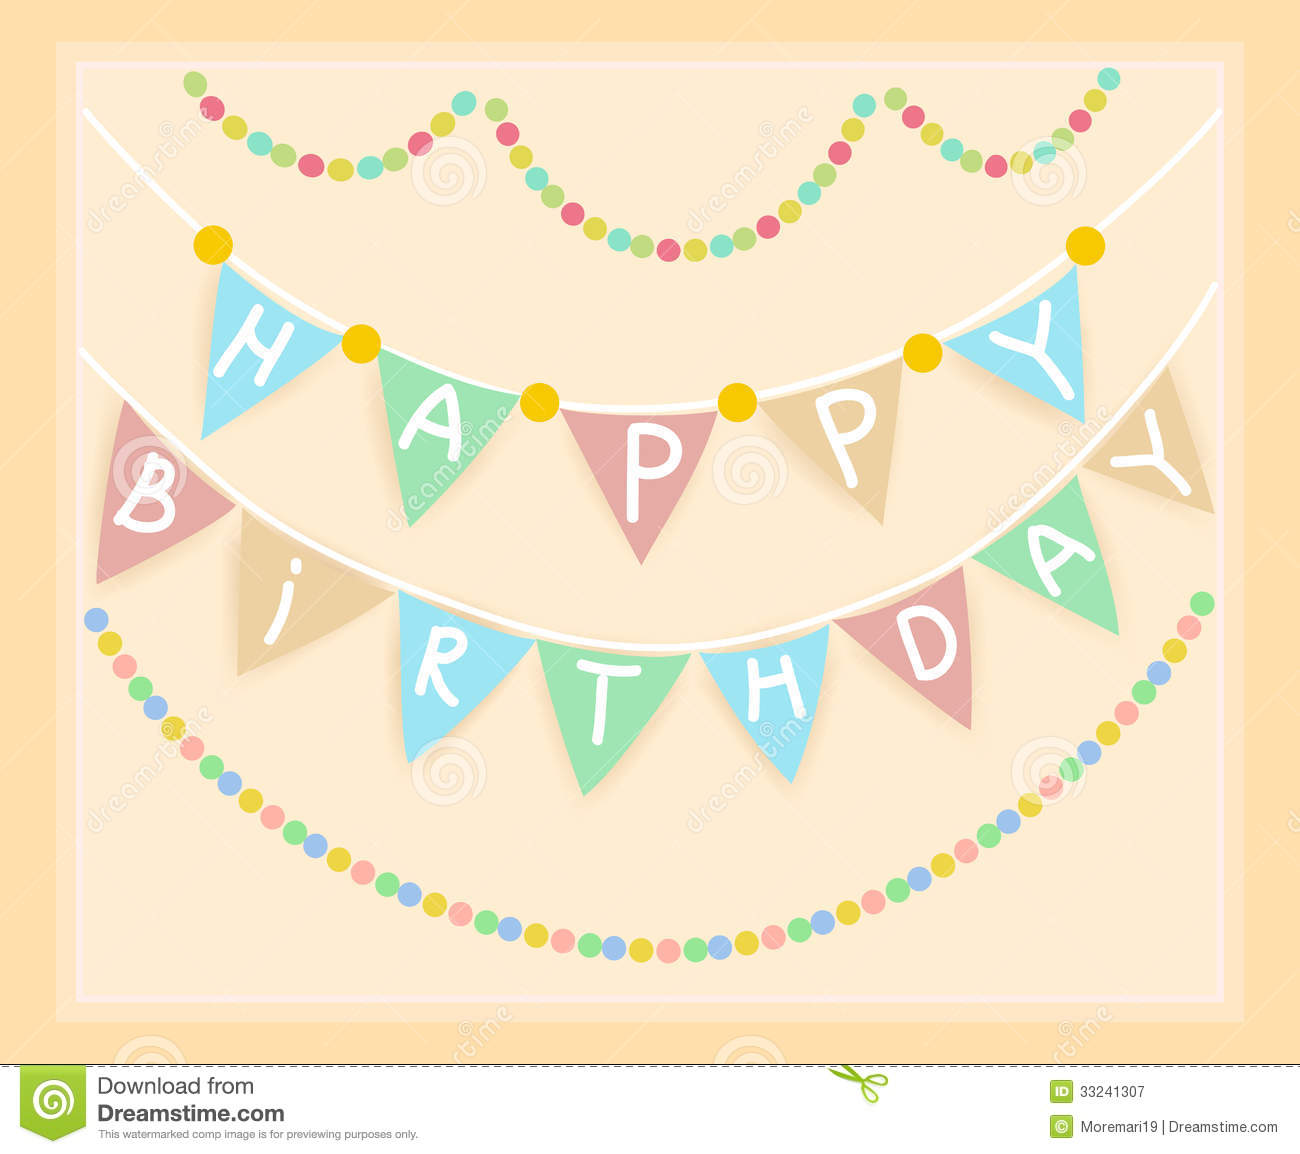 Free birthday banner images - Royalty Free Stock Photo Download Frame Birthday Banner